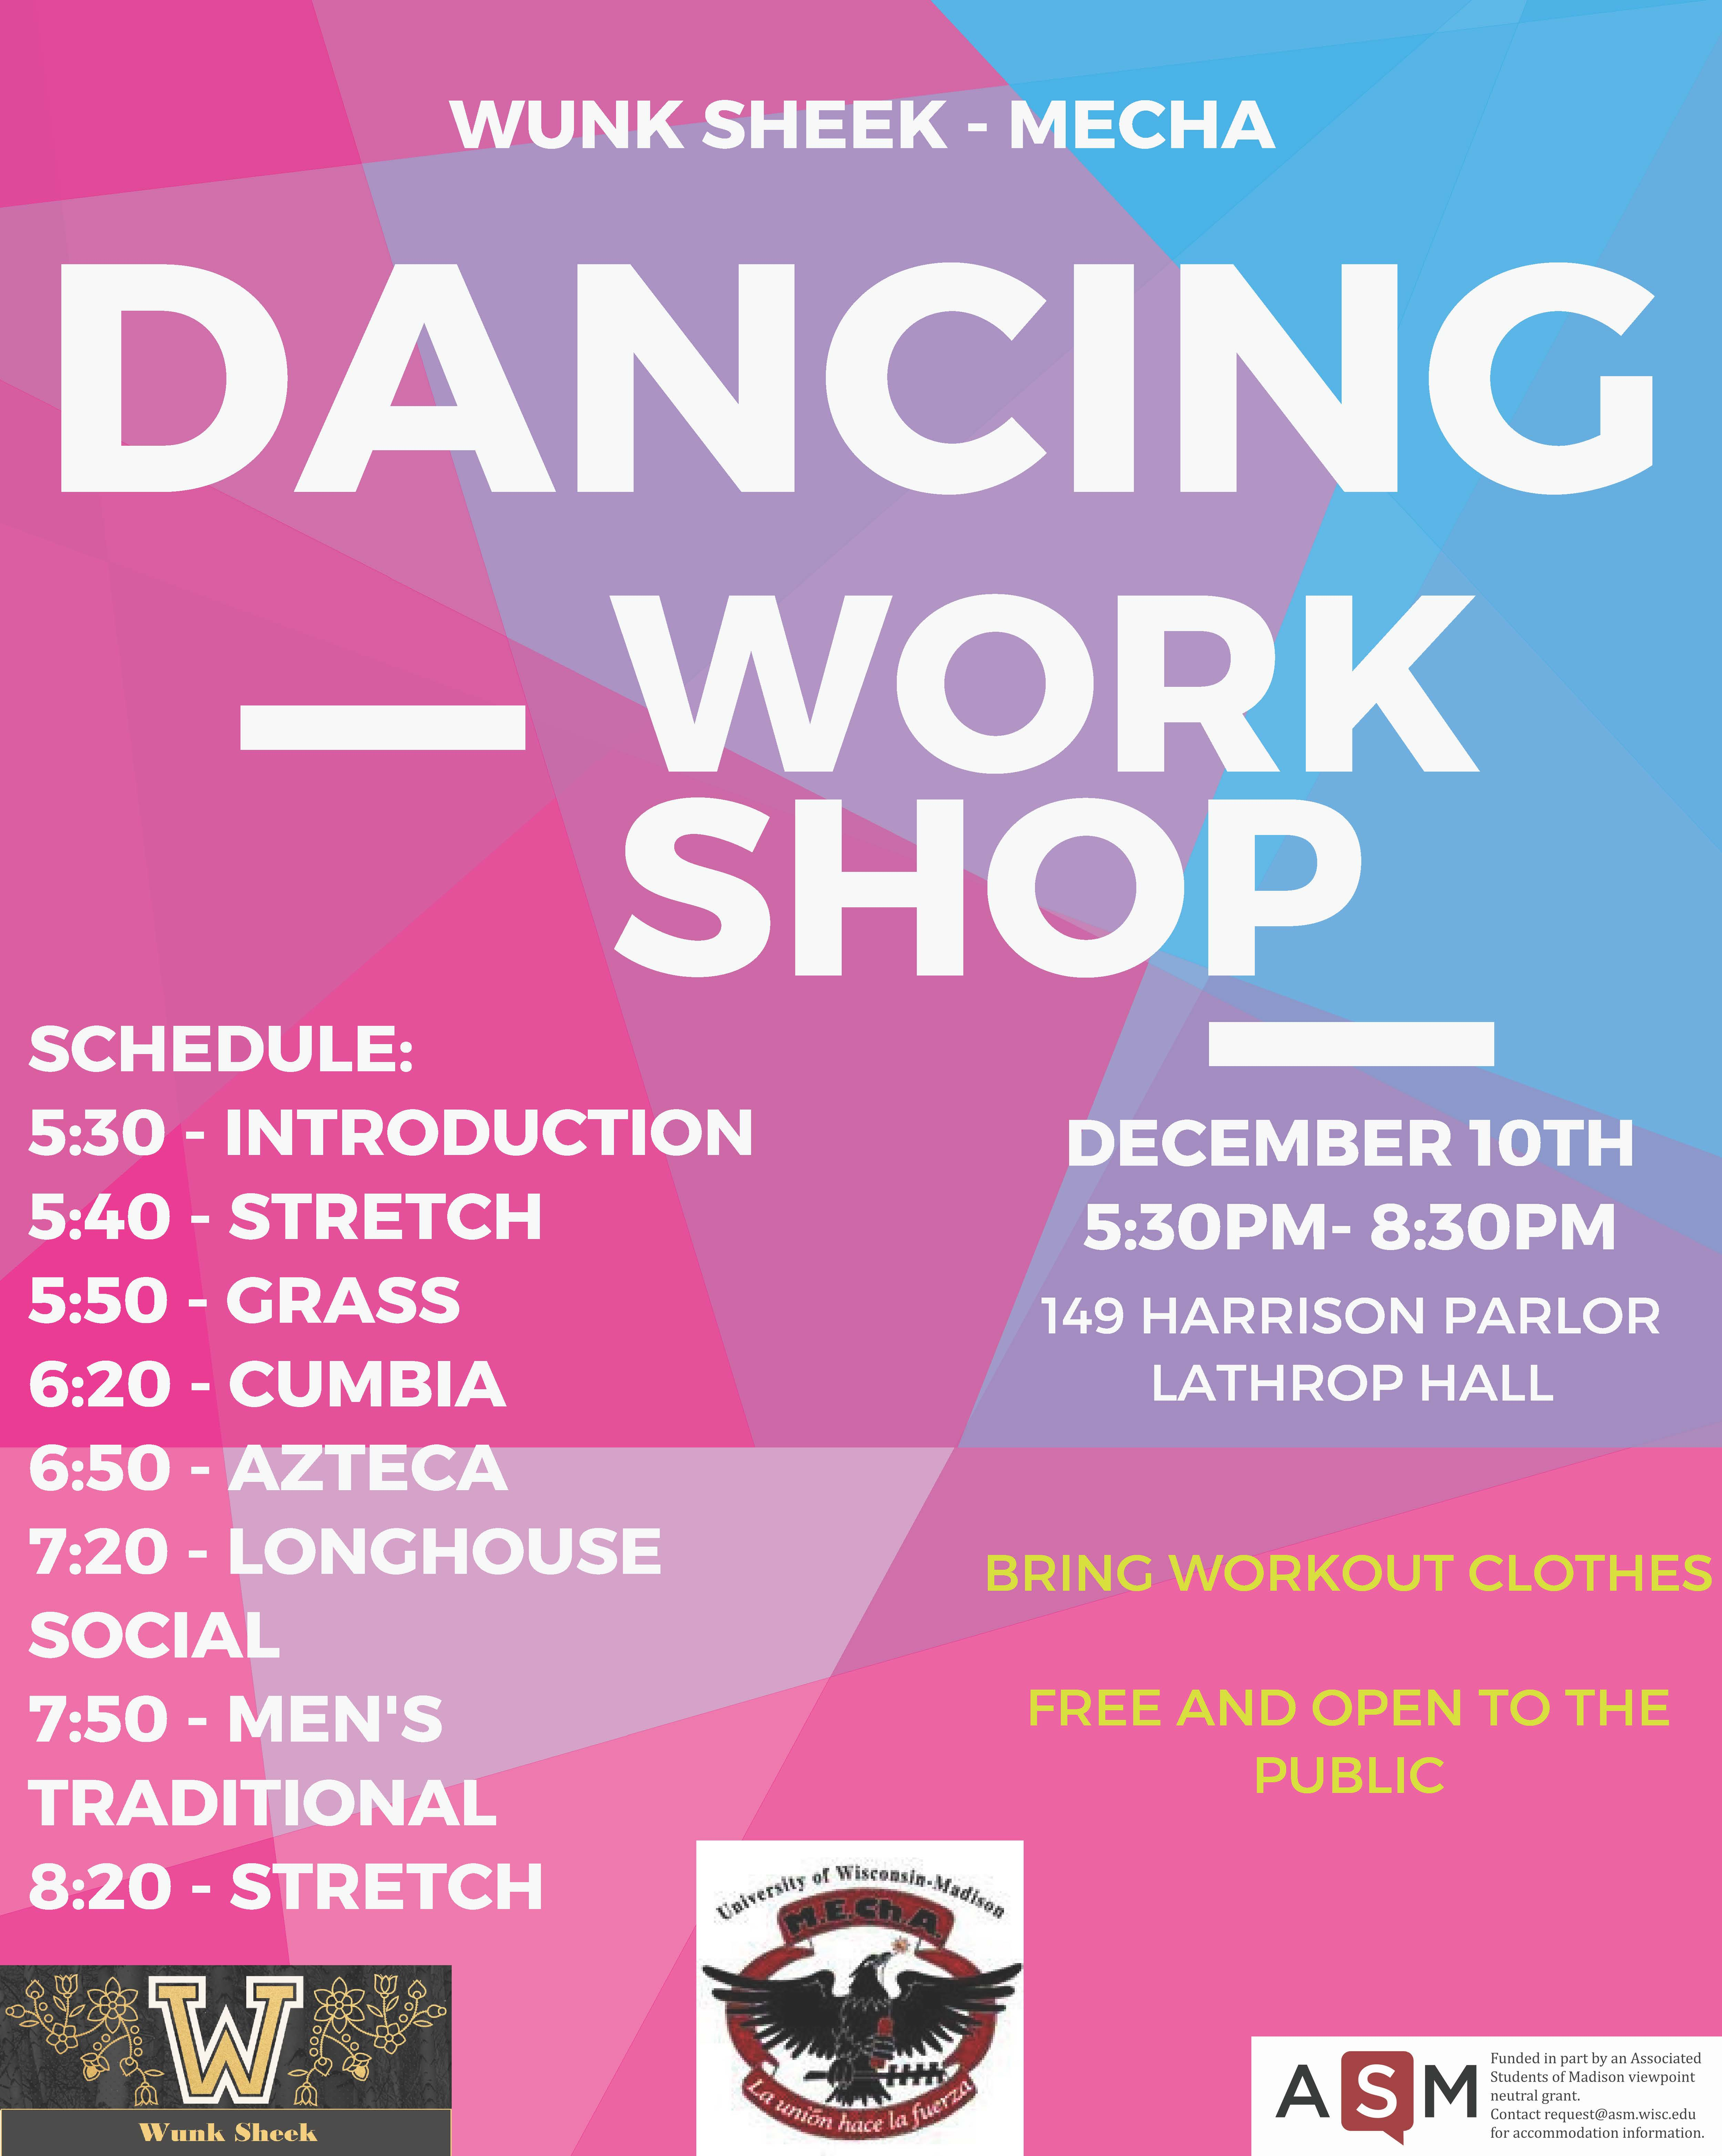 Wunk Sheek - Mecha Dance Workshop